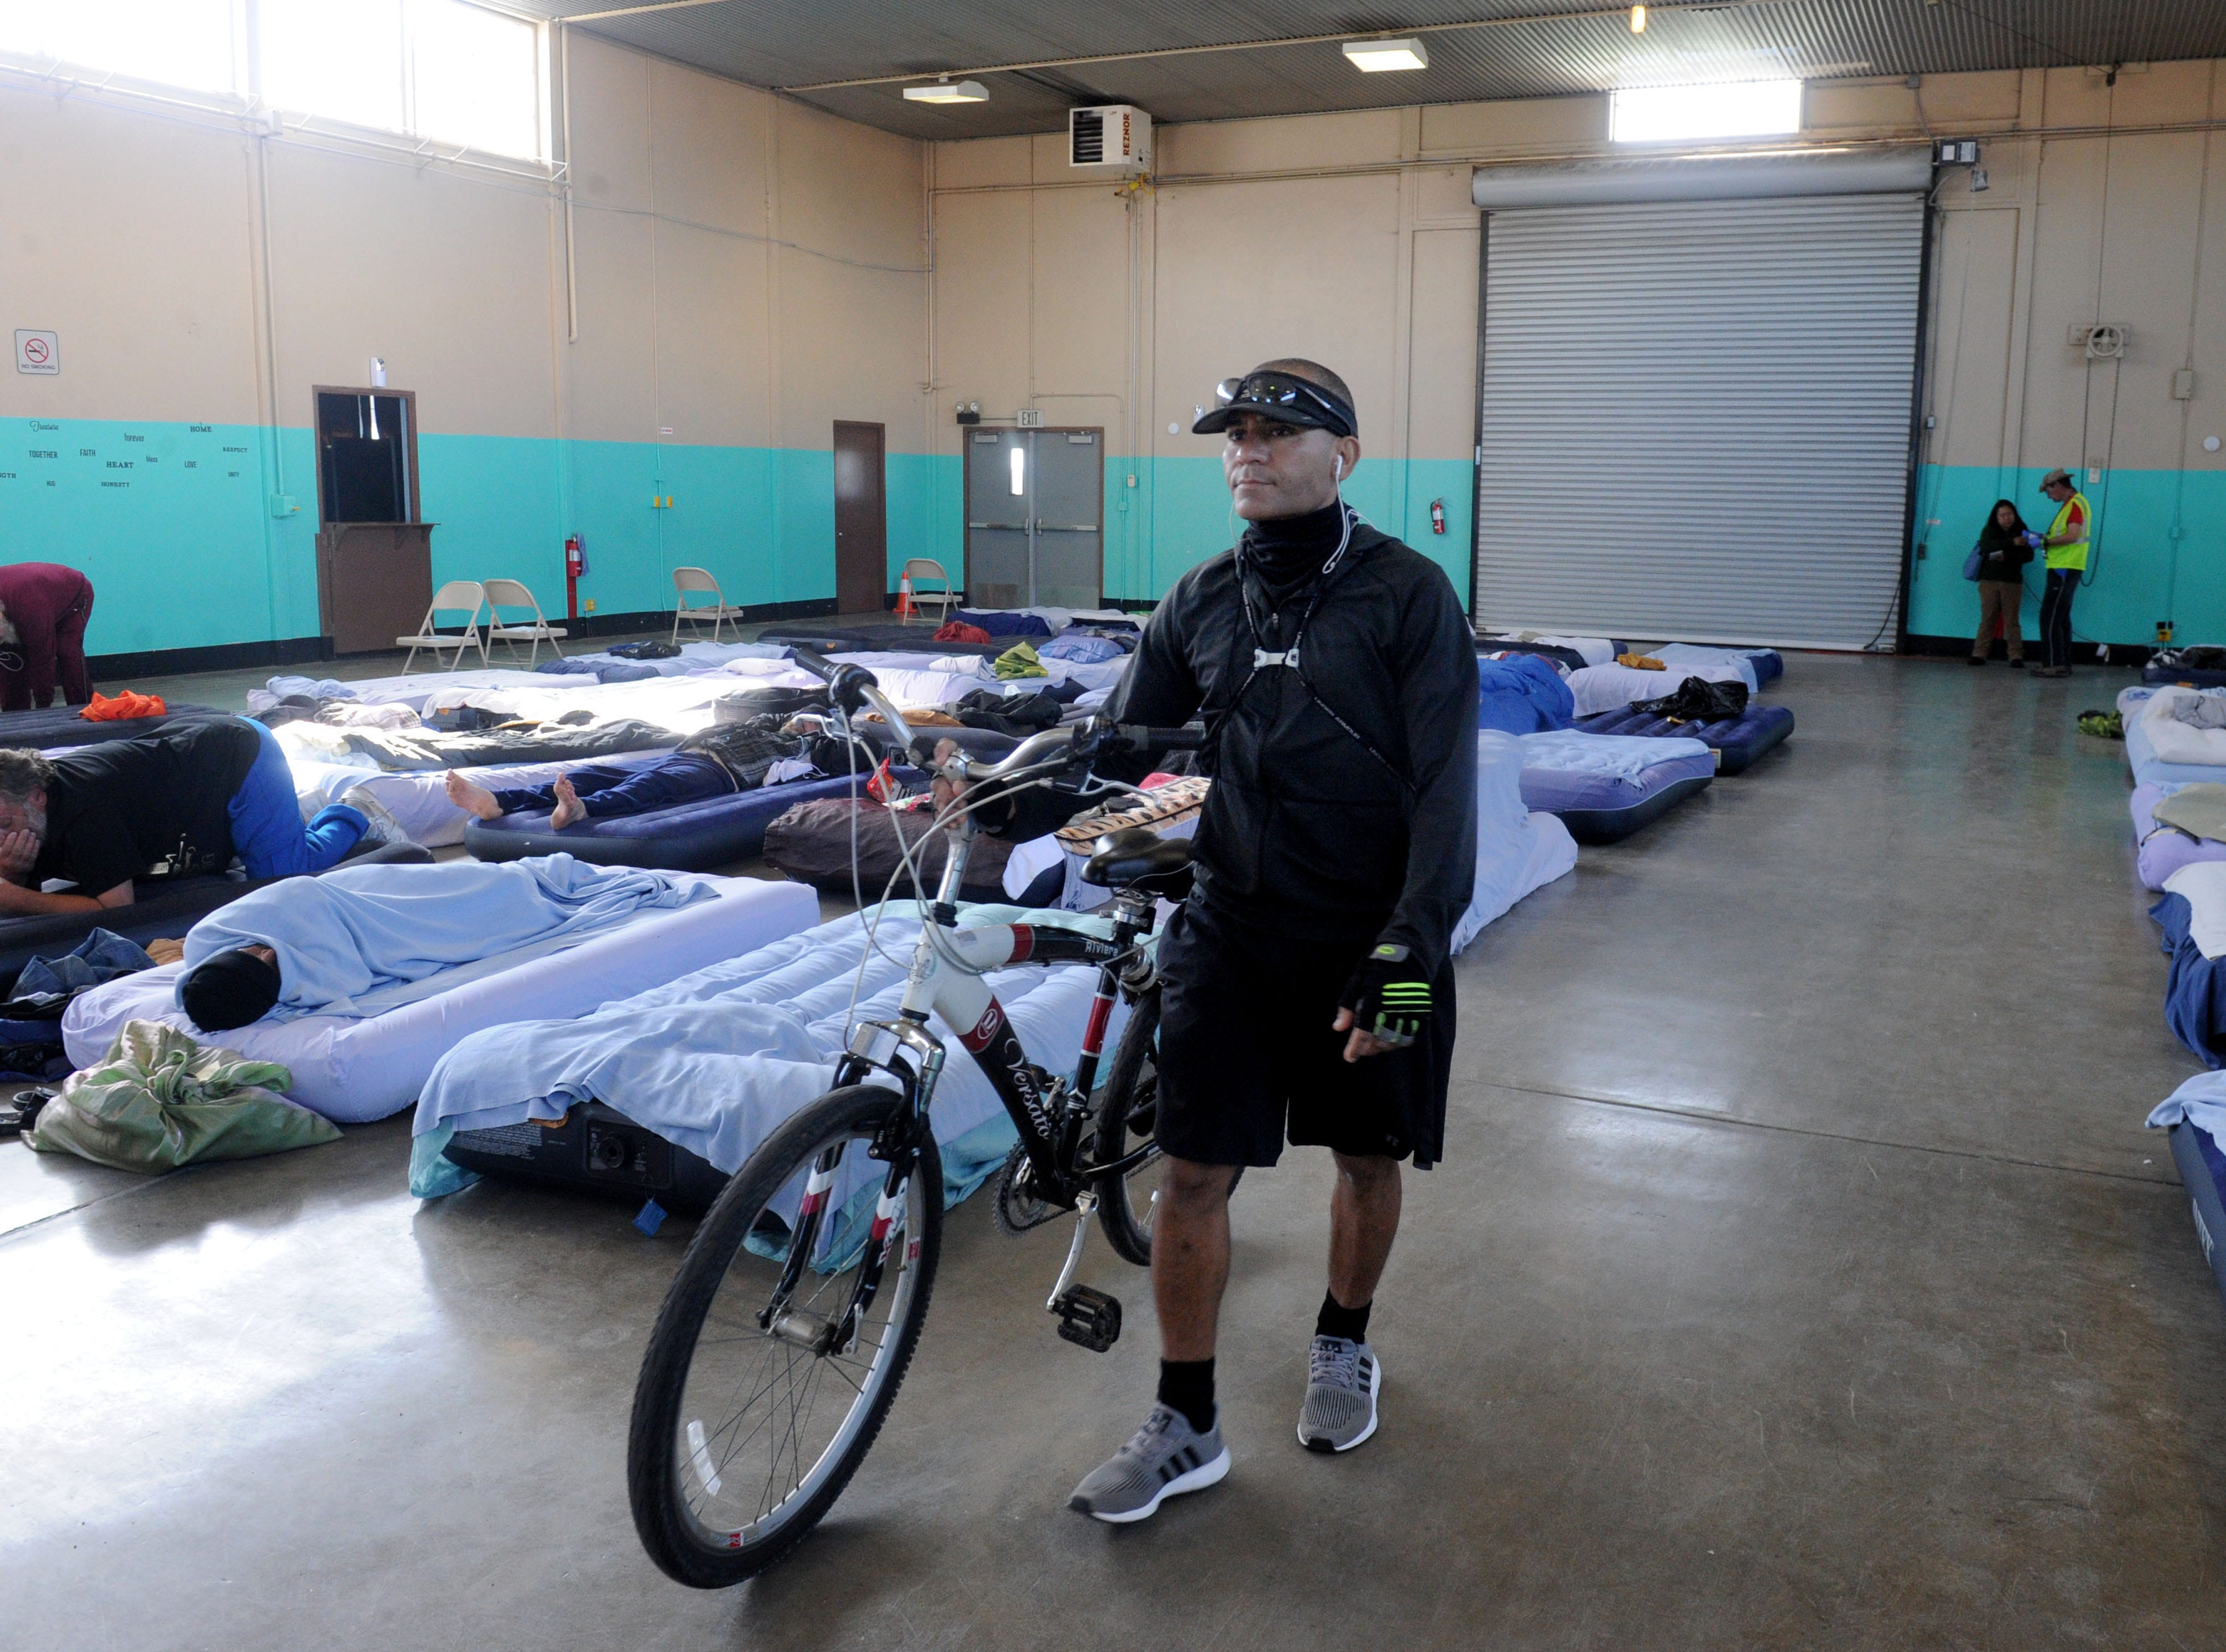 Samuel Foster gets ready to leave the Oxnard homeless shelter to run errands.